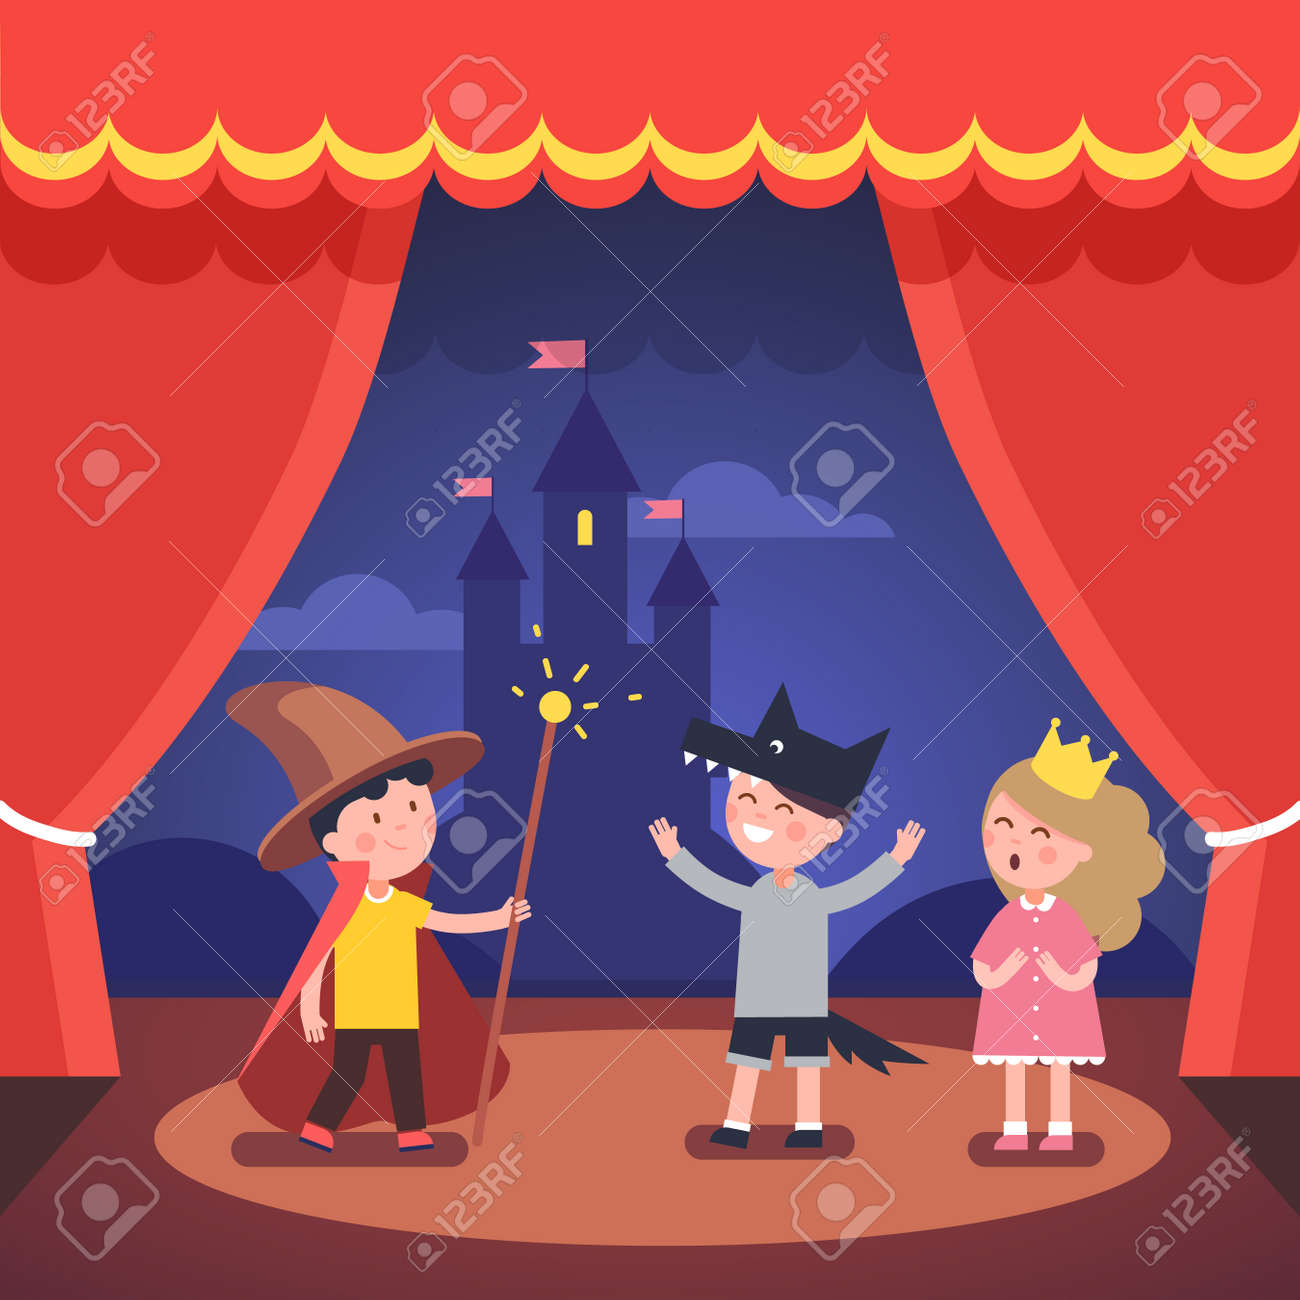 Theater curtains download free vector art stock graphics amp images - Kids Theater Performance Show On Scene With Red Curtains And Fairy Tale Castle Scenery Modern